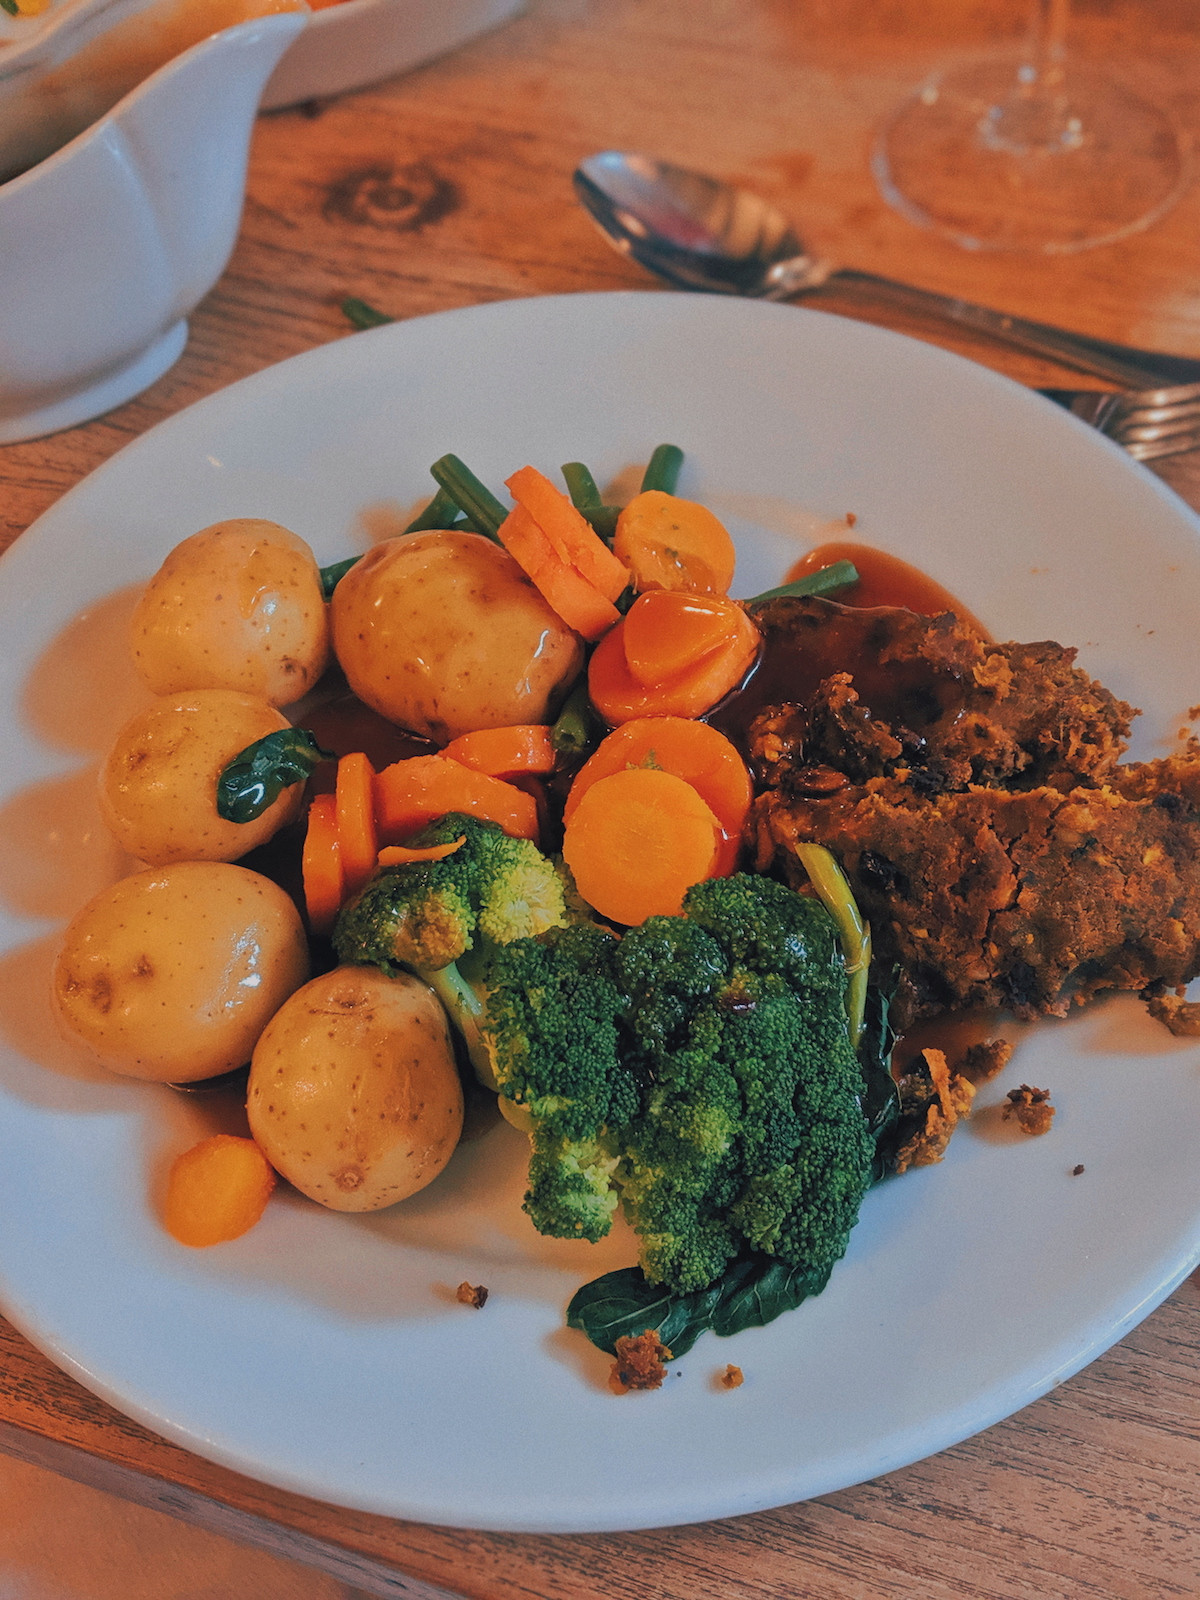 Vegan roast at The Splash at the Royal Oak Inn